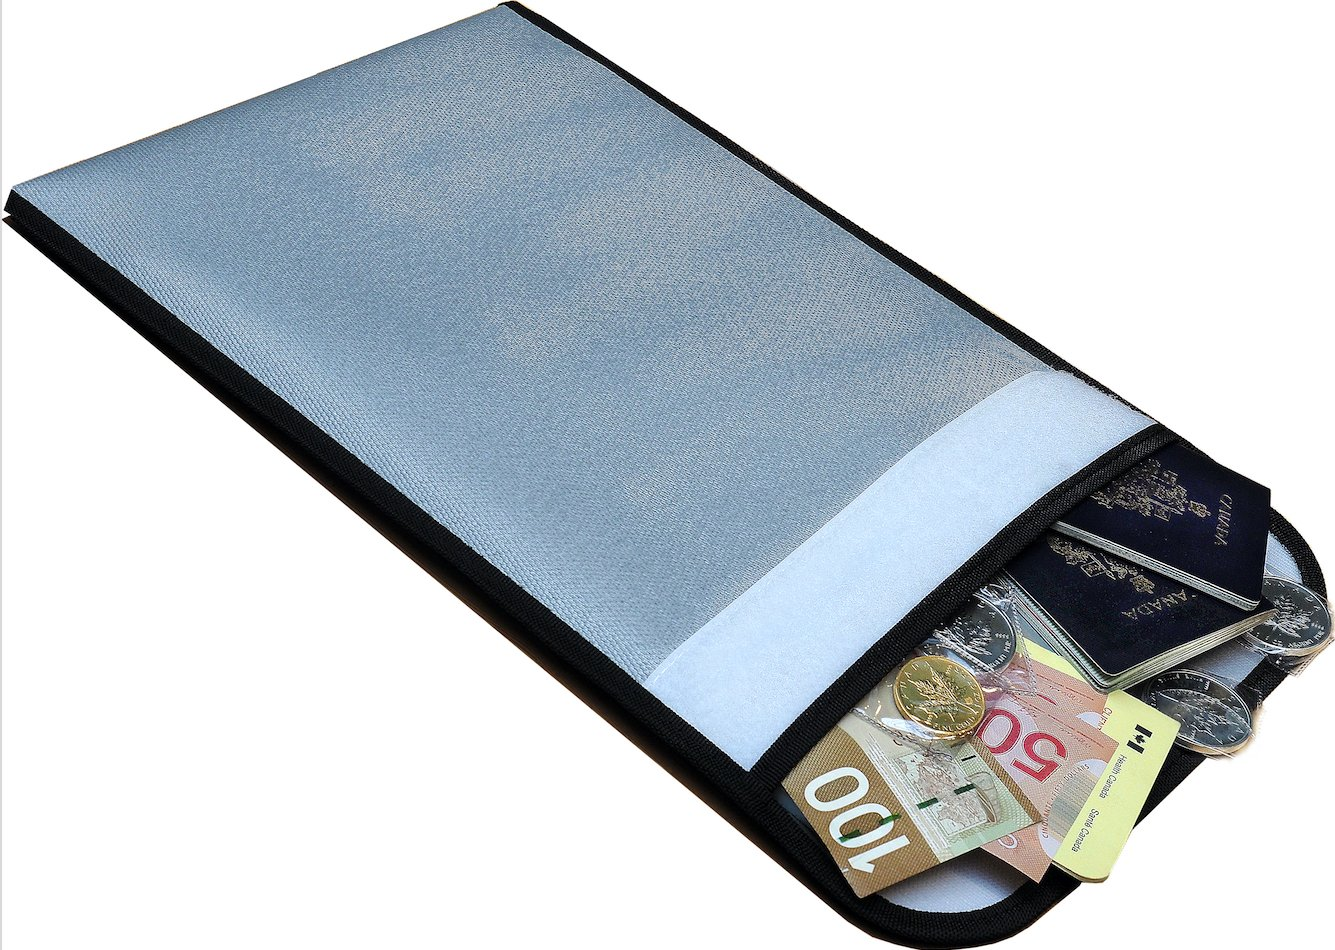 """EMBASSY Fireproof Document and Cash Bag 15"""" x 11"""" - Silicone Coated Fire Resistant Money Pouch for Passports, Jewelry, Certificates, Titles, Birth Certificates - Safe Fire Proof Protection"""